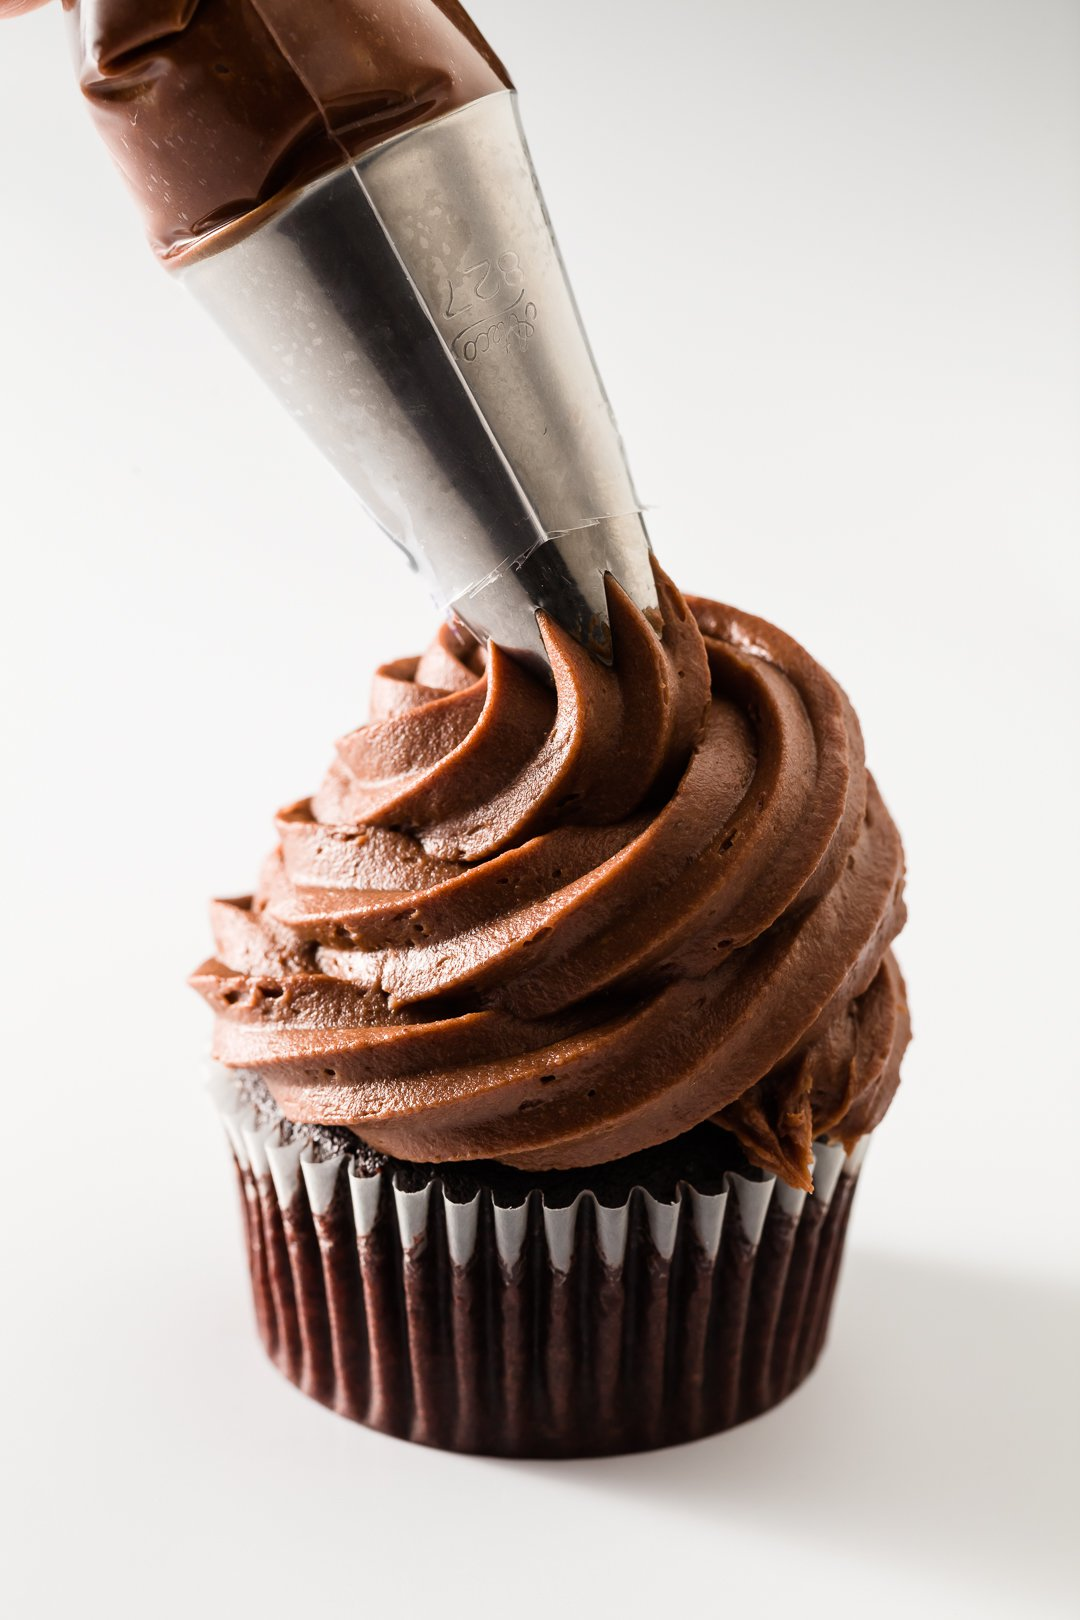 Chocolate cream cheese frosting being piped onto a chocolate cupcake